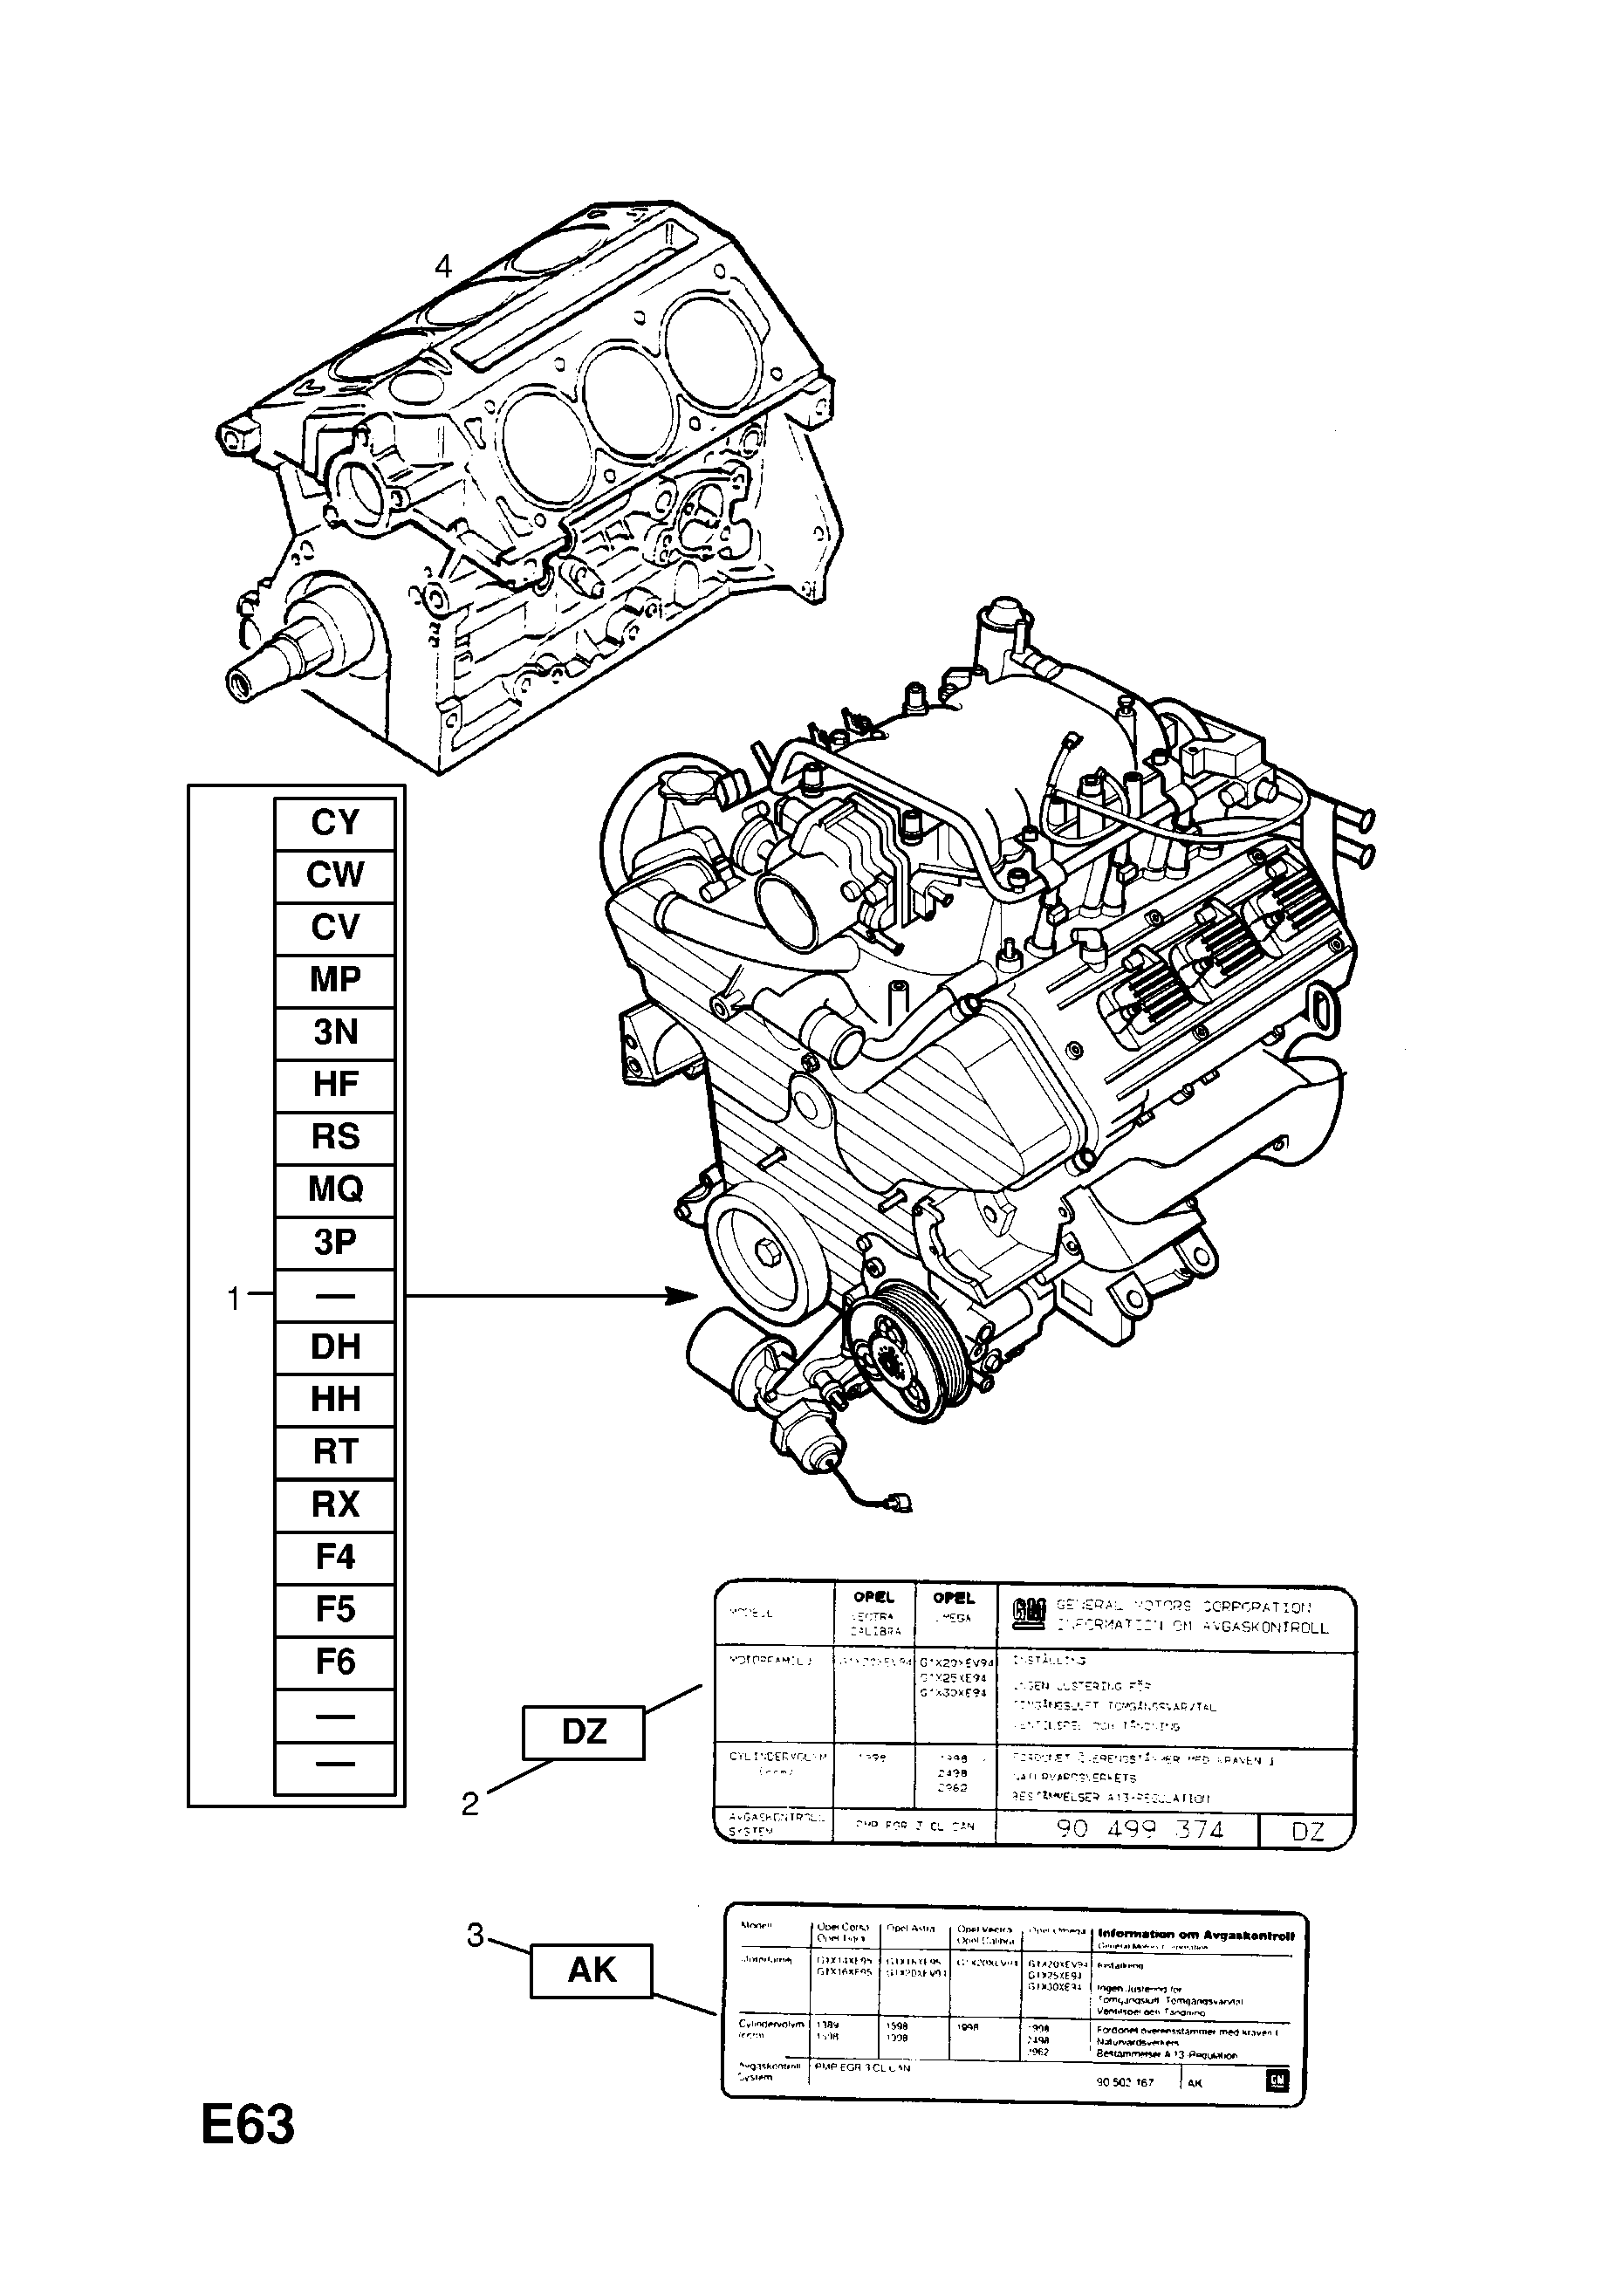 l81 engine diagram blog wiring diagraml81 engine diagram wiring diagrams l81 engine diagram